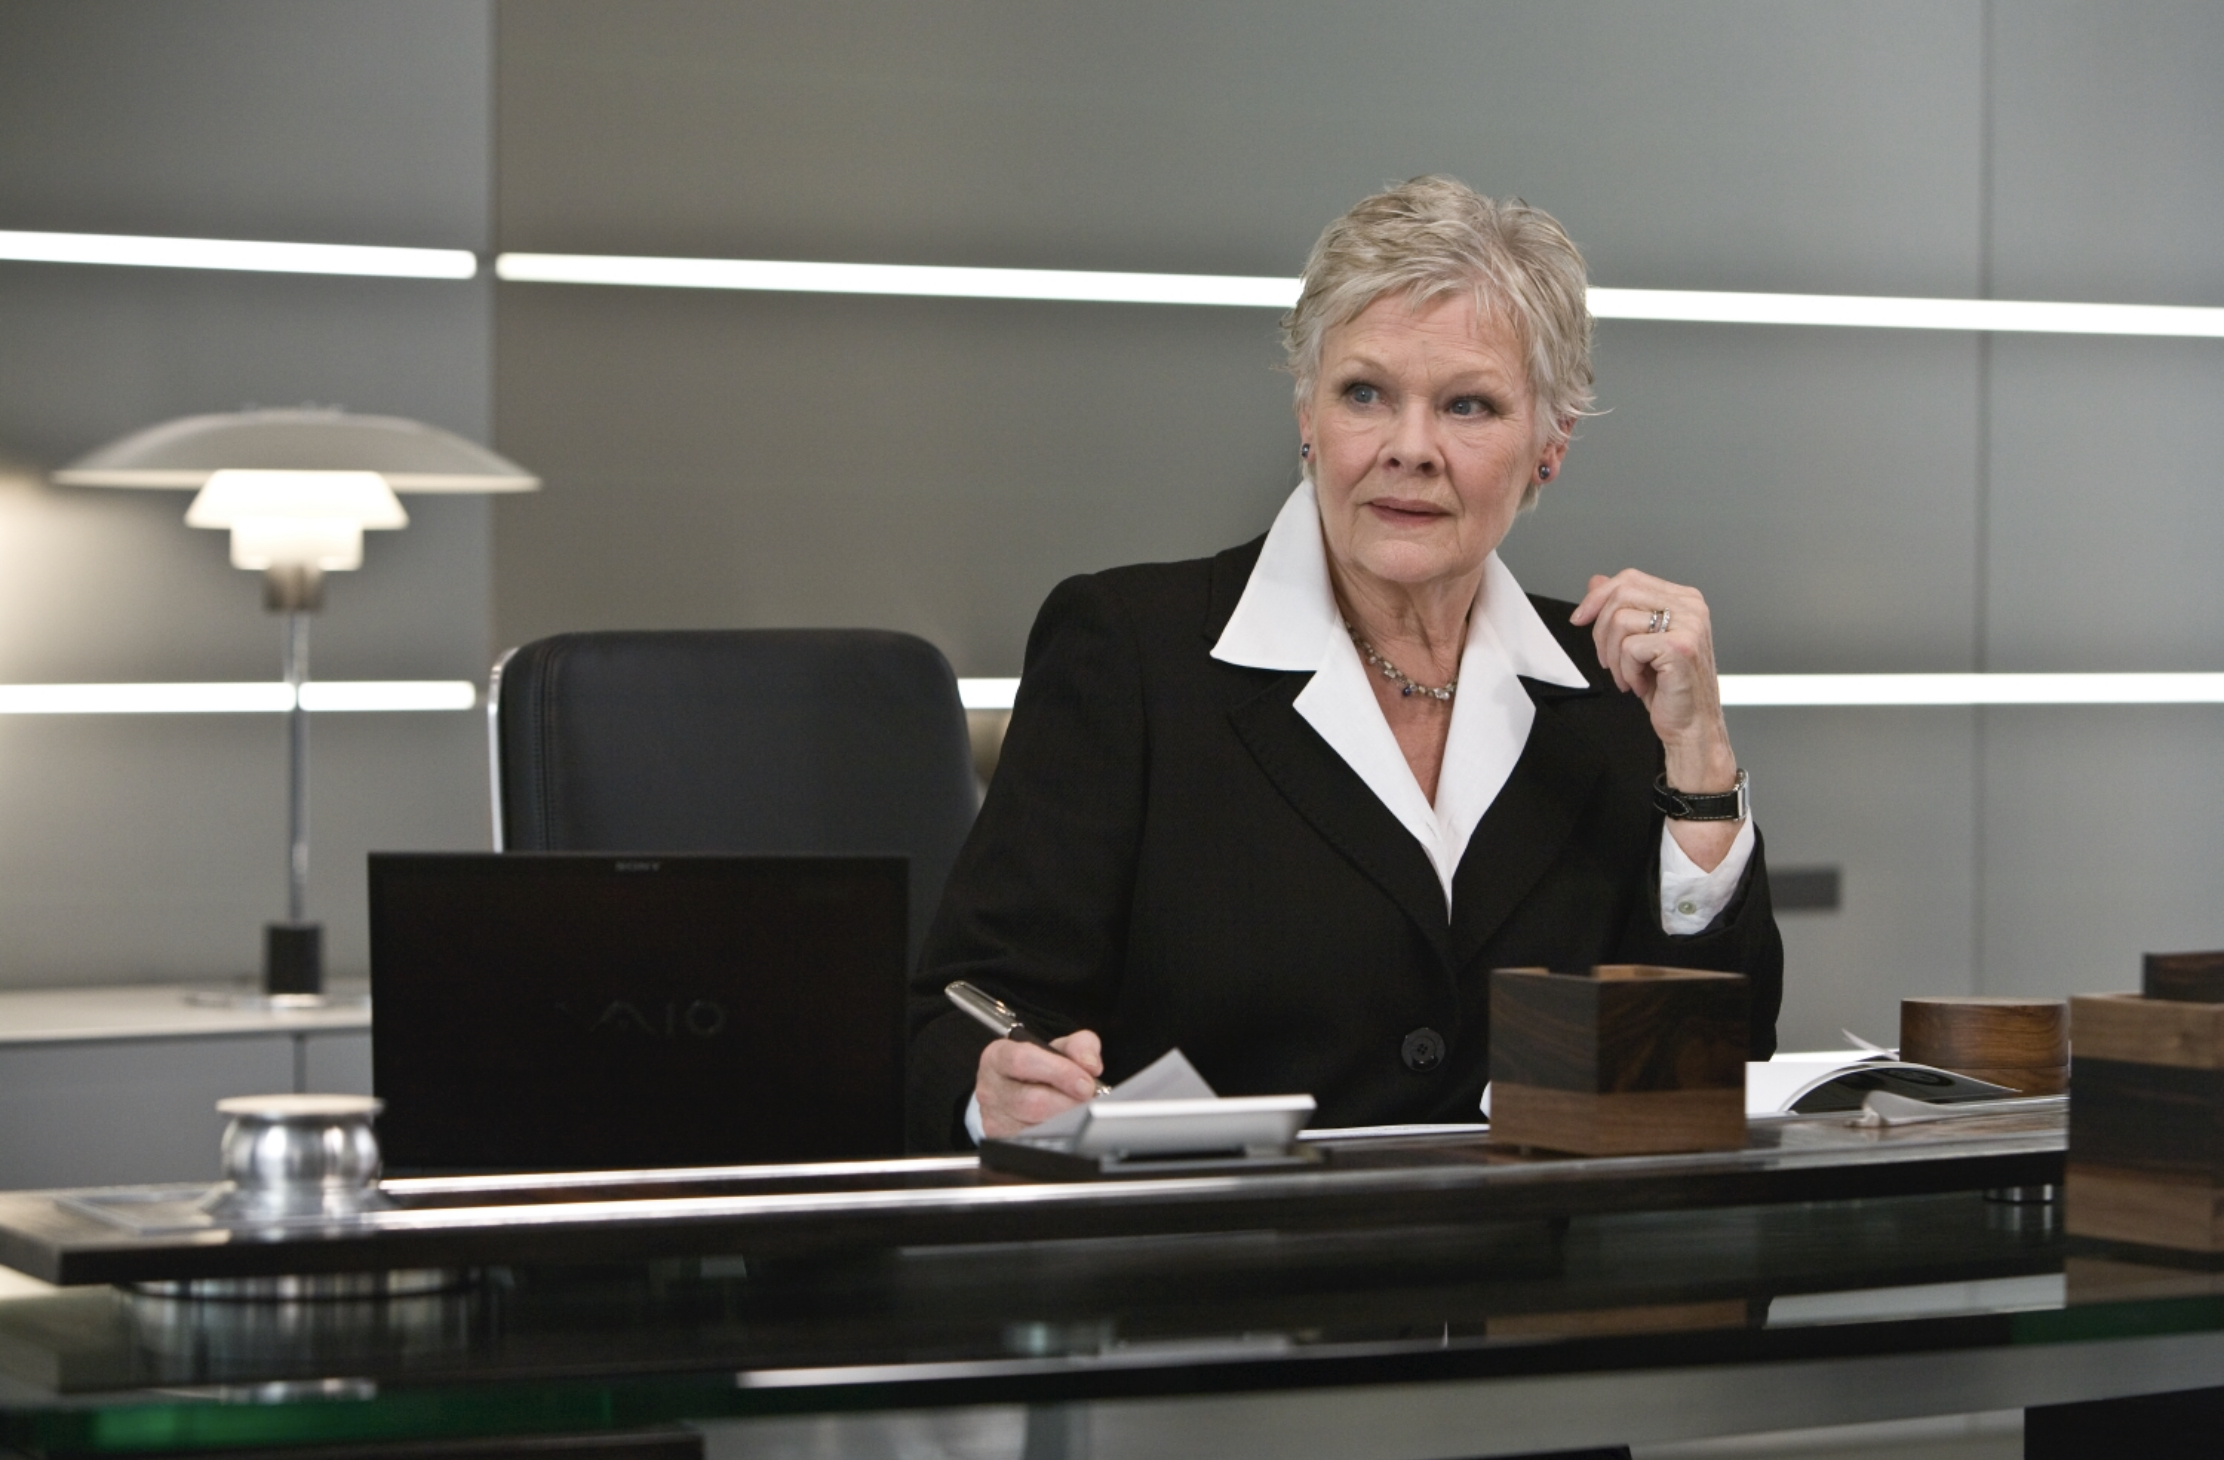 Dame Judy Dench as Lady Miles Messervy